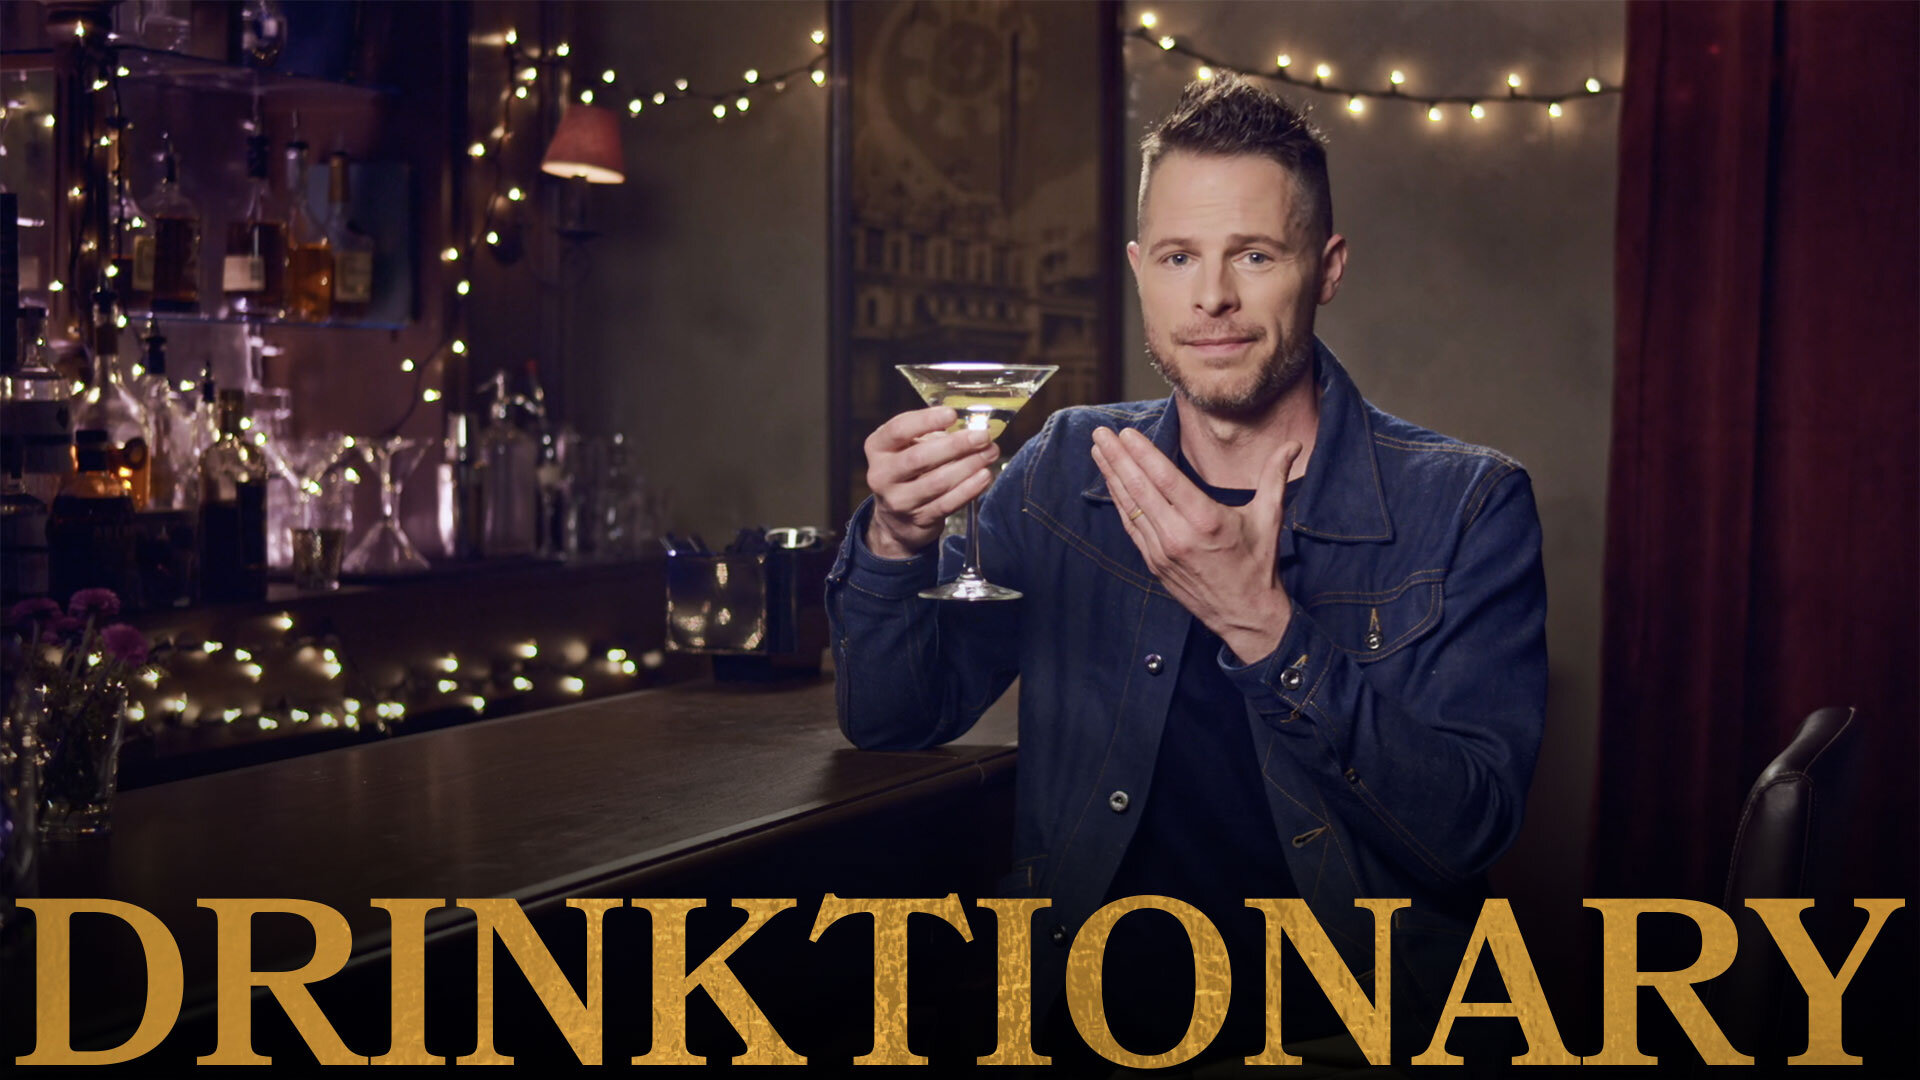 Drinktionary-Widescreen-1920x1080.jpg